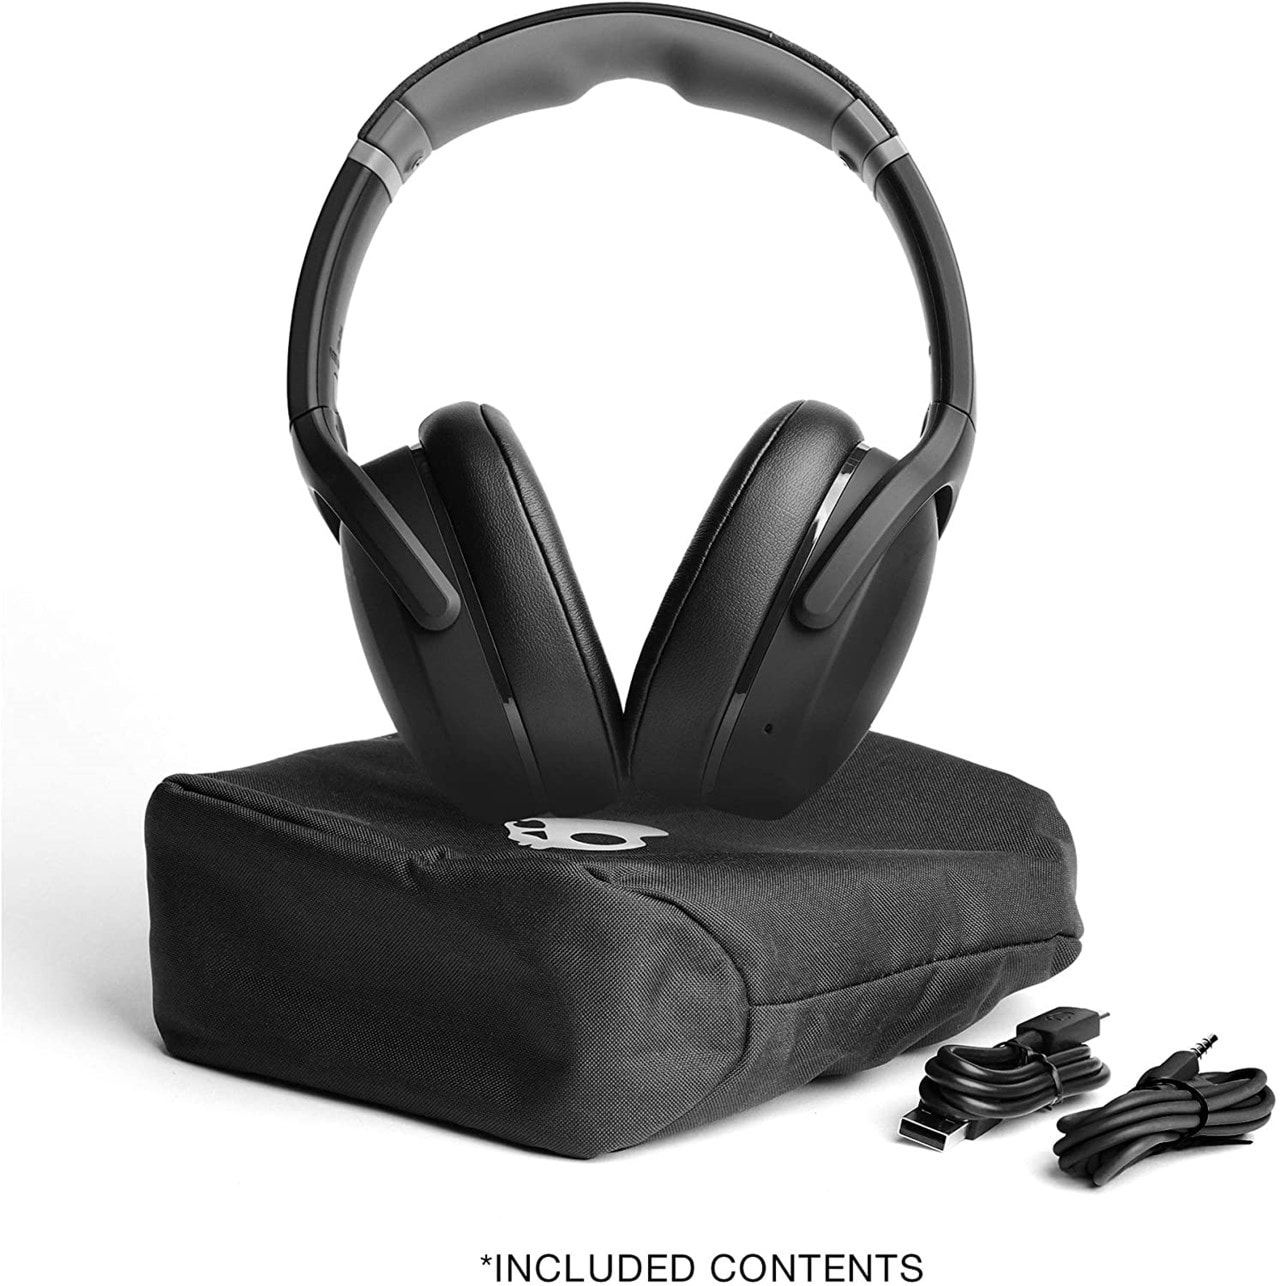 Skullcandy Crusher Evo True Black Bluetooth Headphones - 4